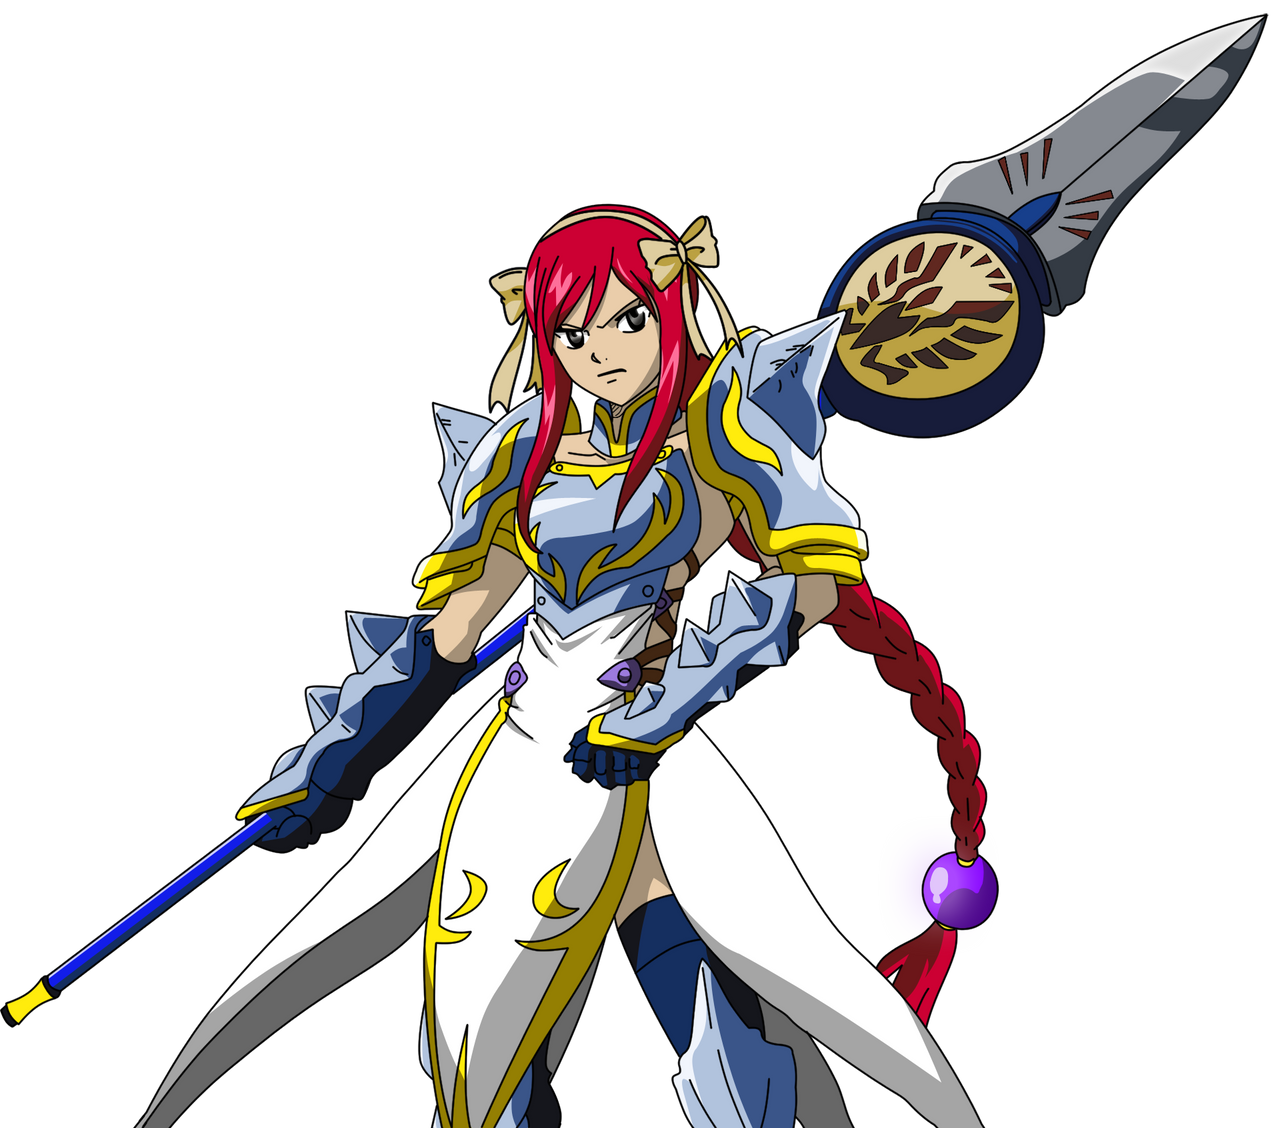 erza scarlet Lightning Empress  fairy tail by ice-doFairy Tail Erza Flame Empress Armor